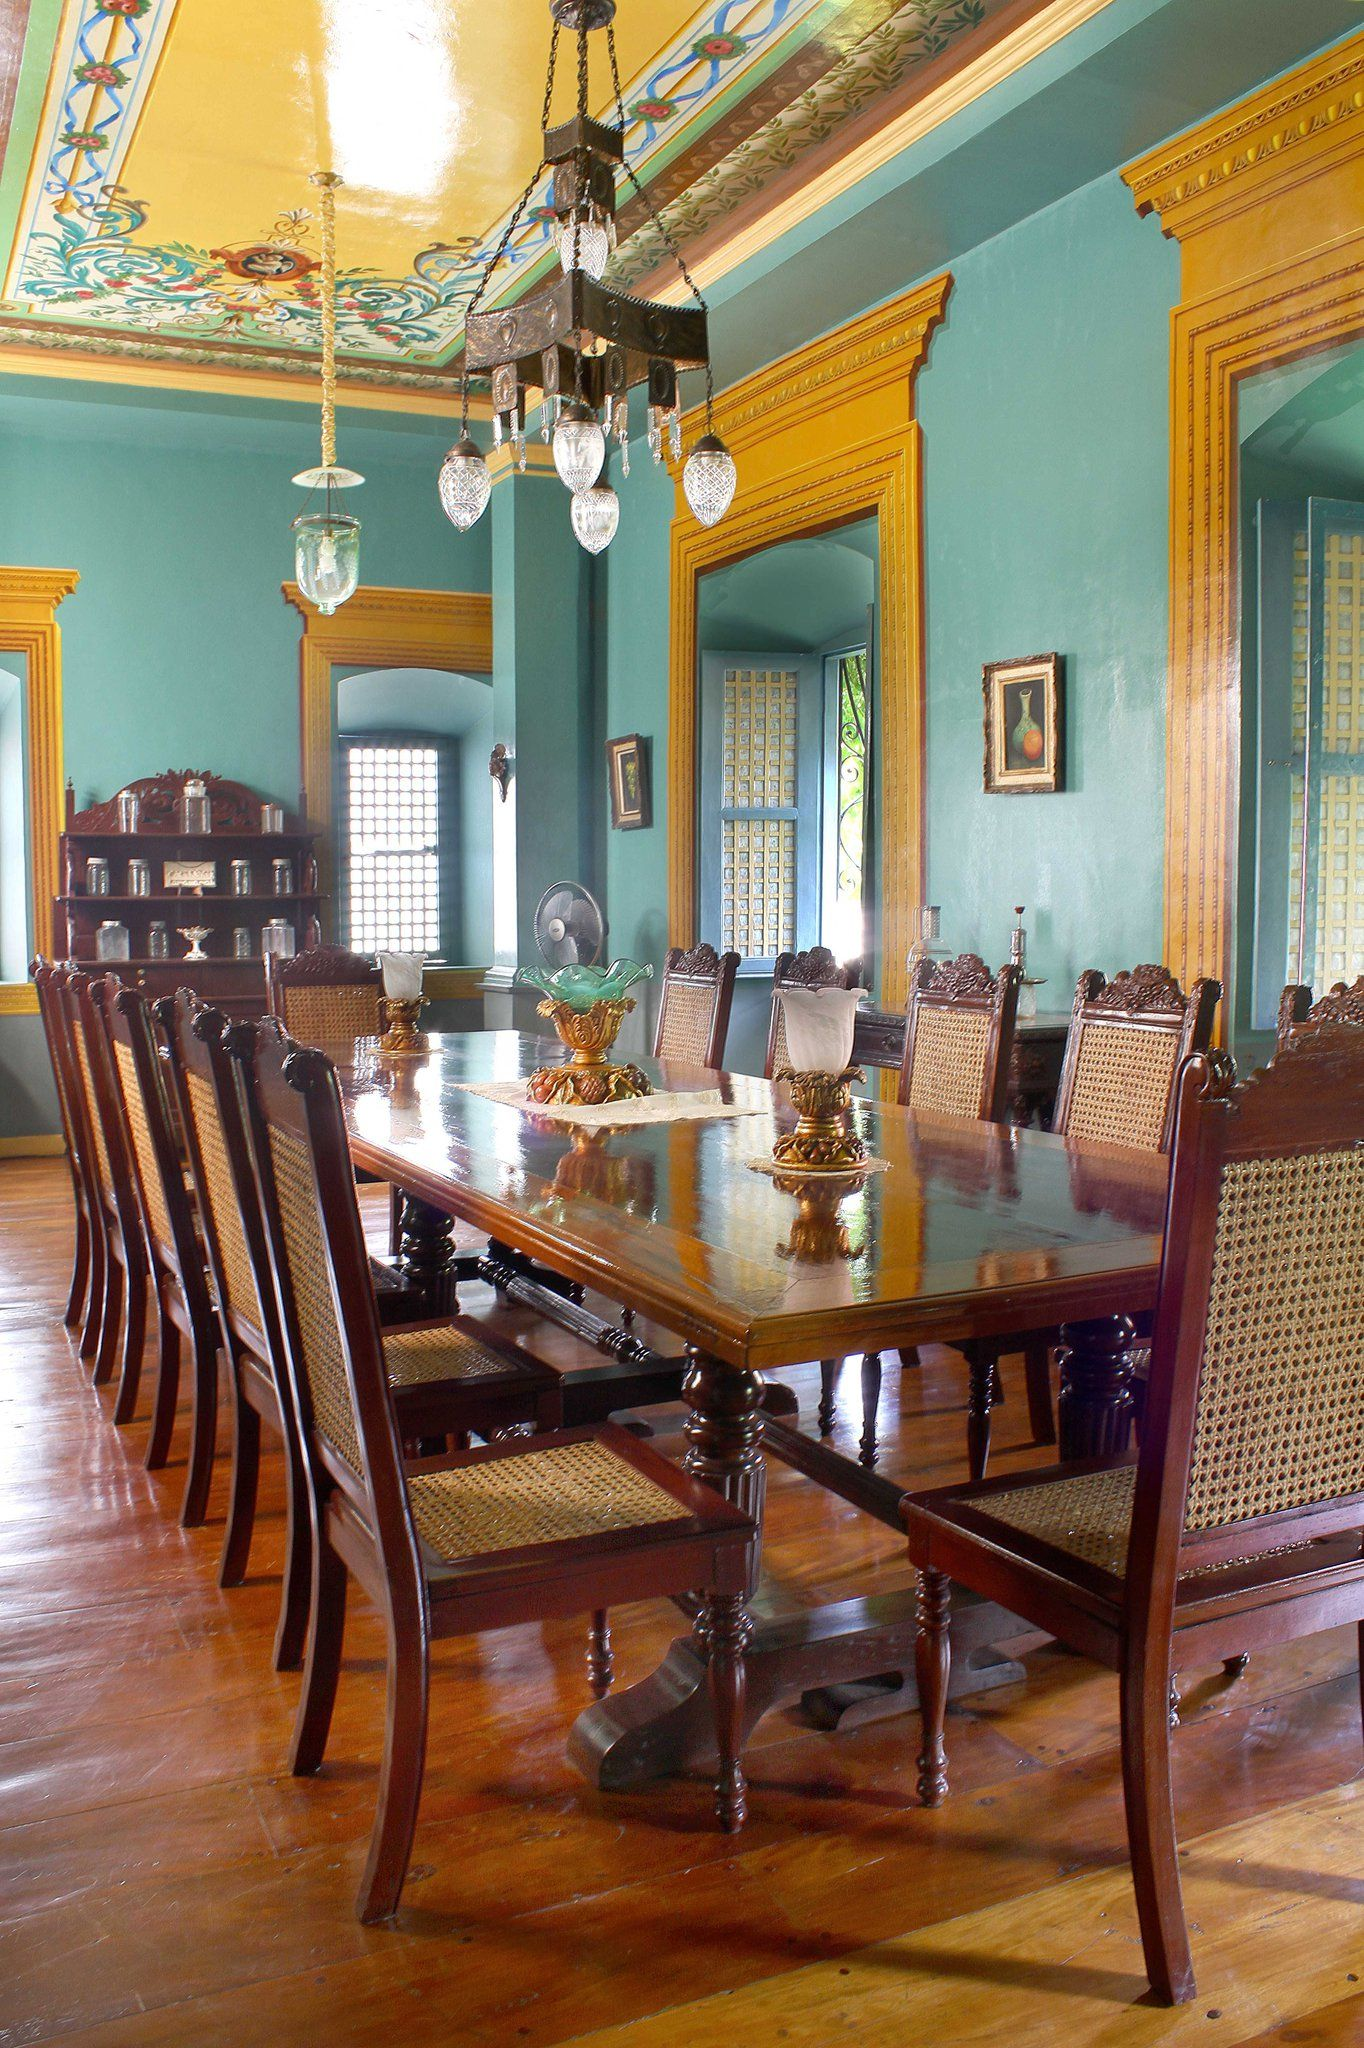 Interior Design Of Dining Room: Filipino Home Styling. The Grand Dining Room Of An